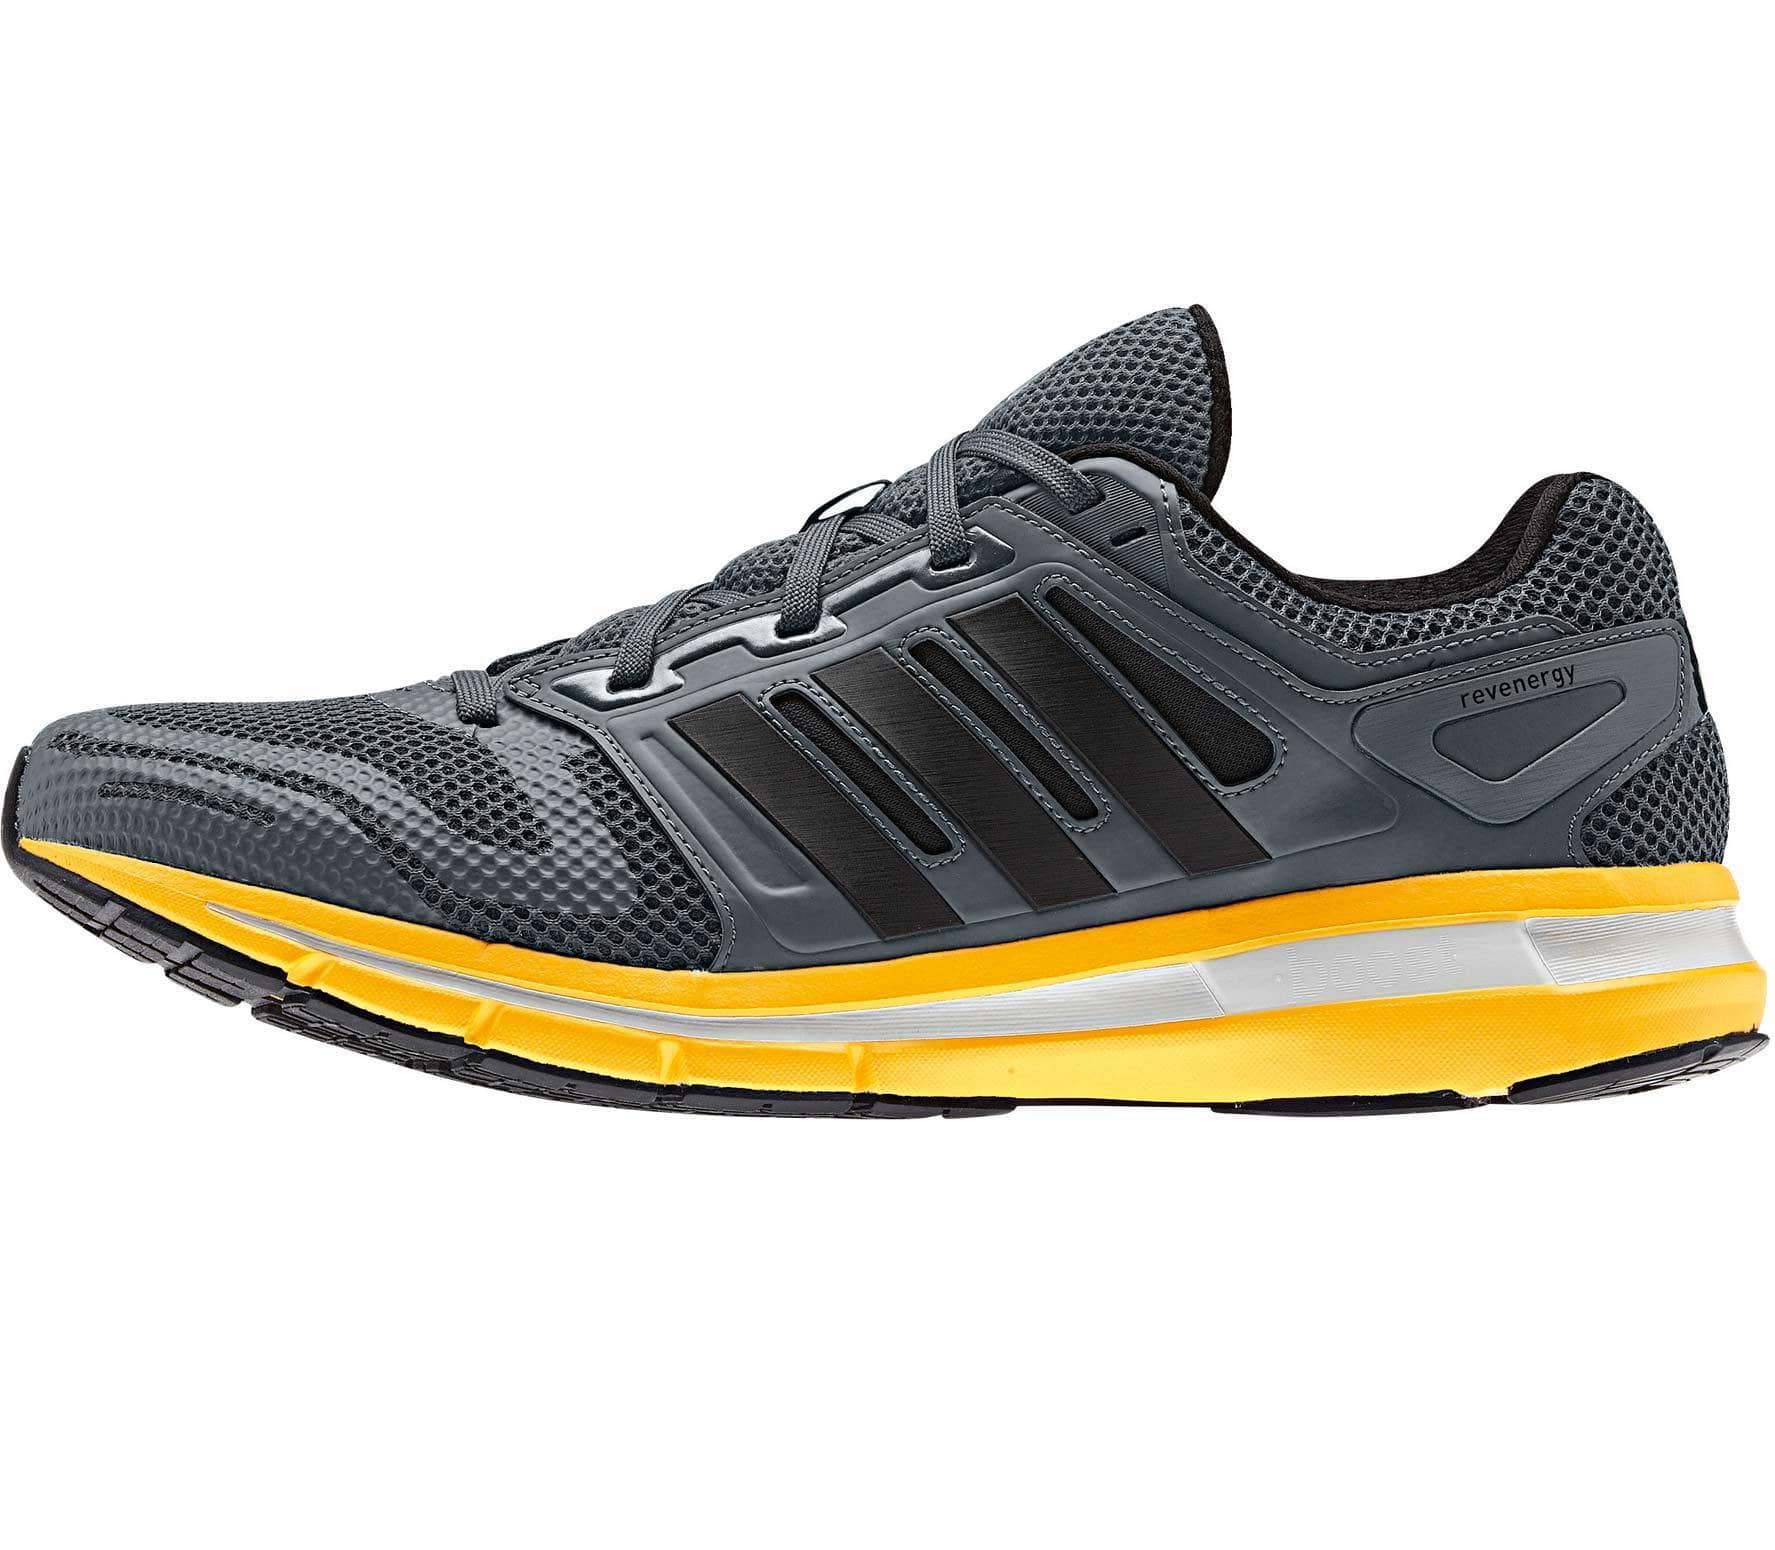 adidas Revenergy Mesh men's running shoes Herren